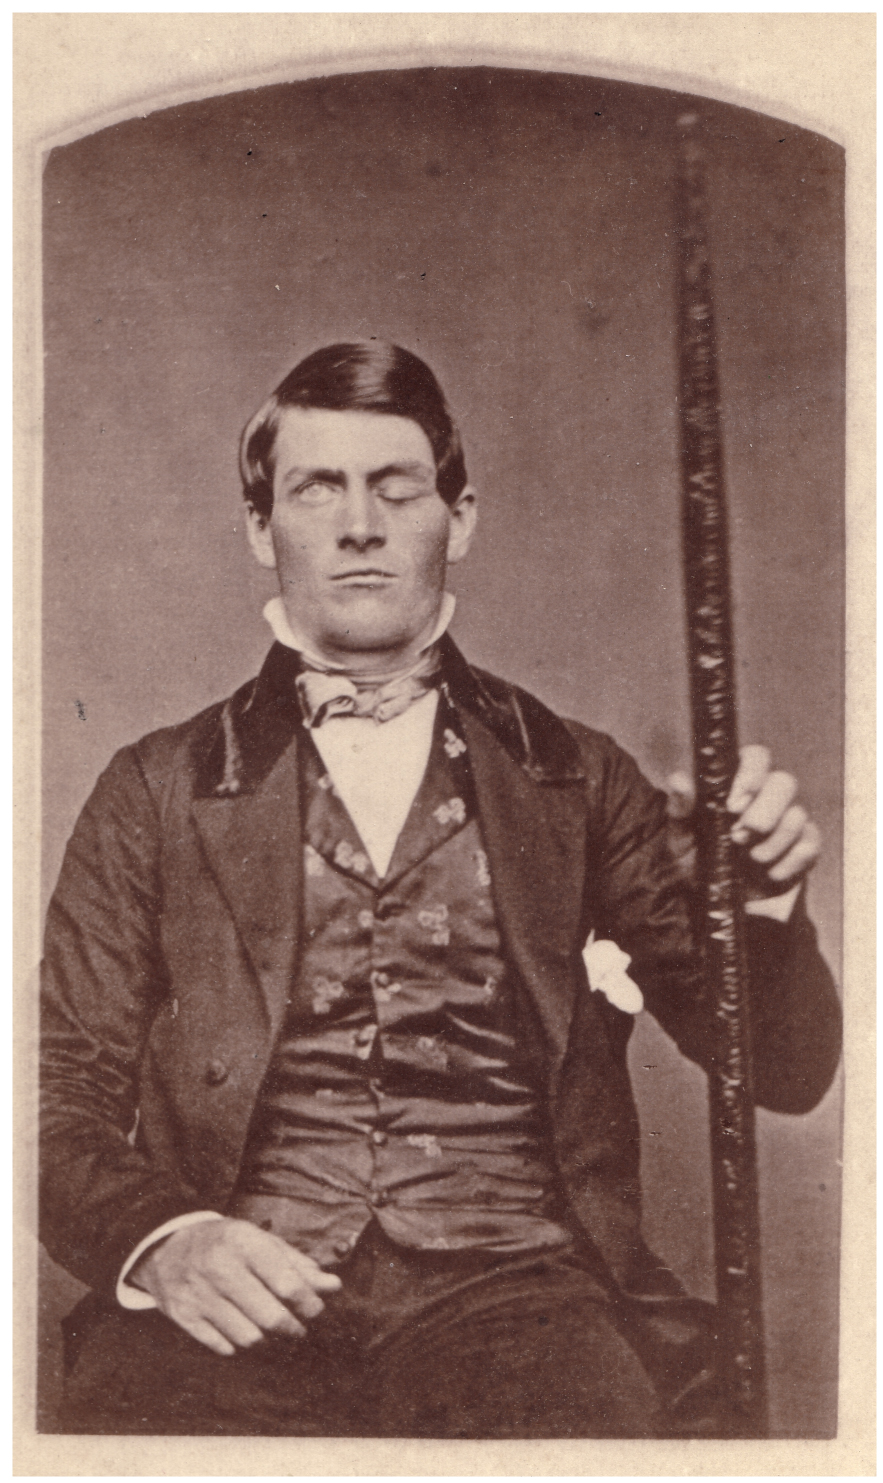 This photo shows Phineas Gage holding the metal spike that impaled his prefrontal cortex.